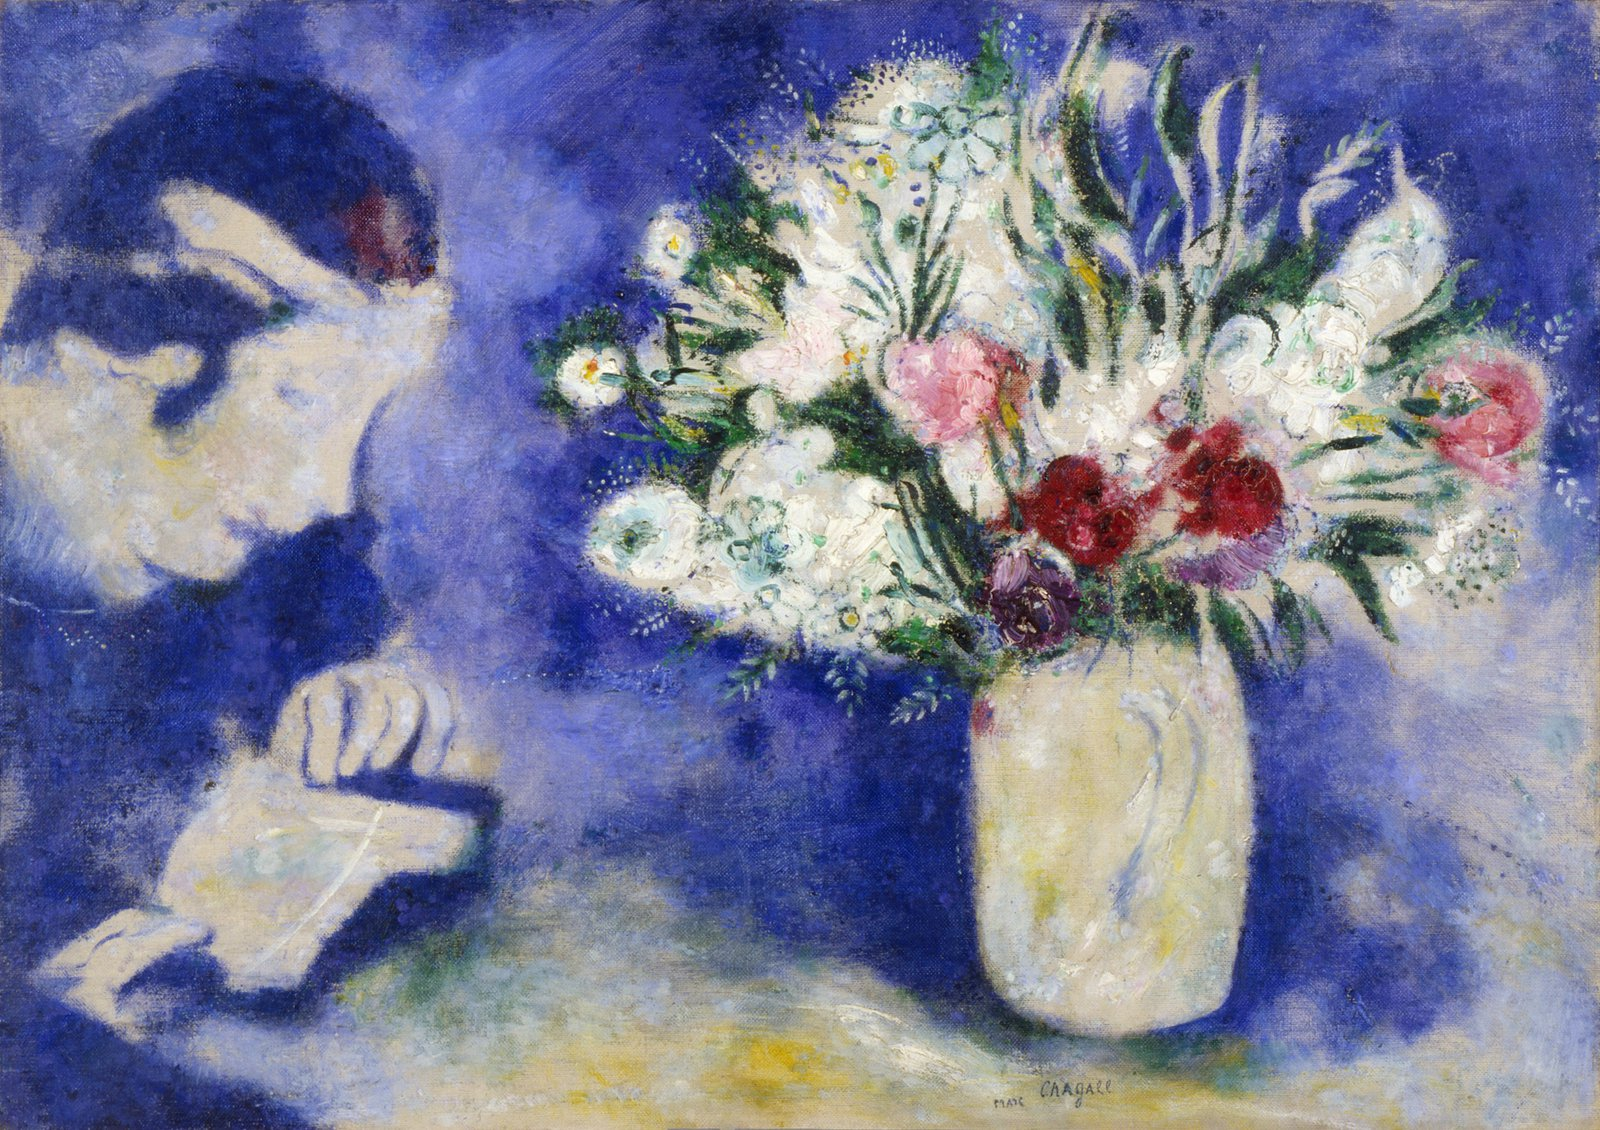 <h1>3 countries provided the museum in Moscow suburbs with works of Marc Chagall</h1><h2>From November, 16th to March, 8th The New Jerusalem exhibition complex demonstrates the exposition of Russian-born Jewish artist</h2>